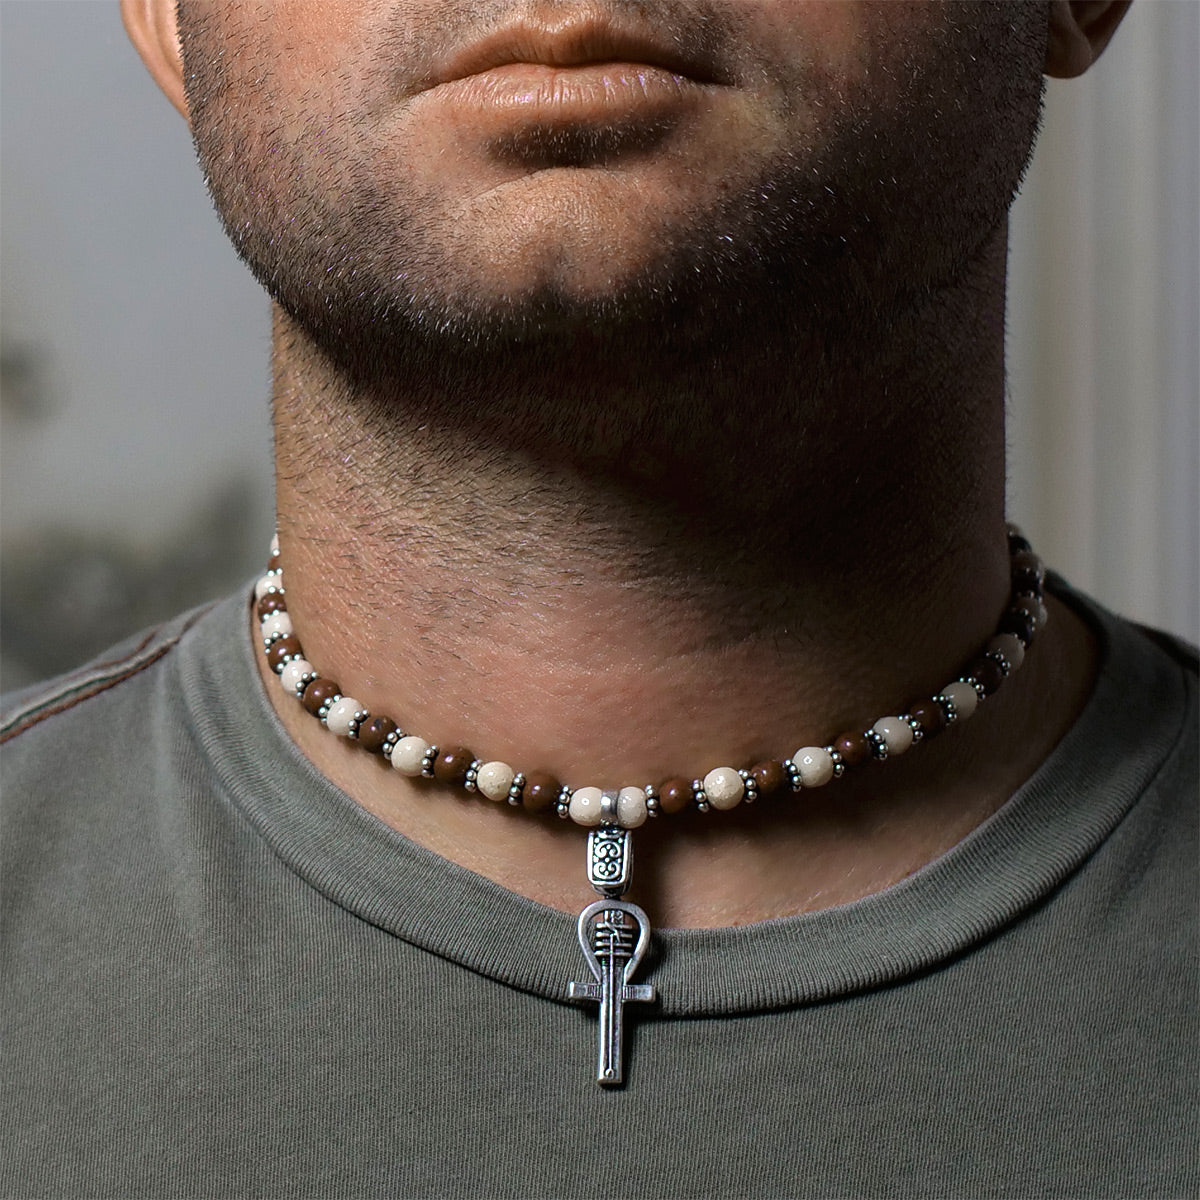 Men's Necklace in Sand Tone Faience with Hand-Hewn Matte Red Jasper - Em Hotep Collection